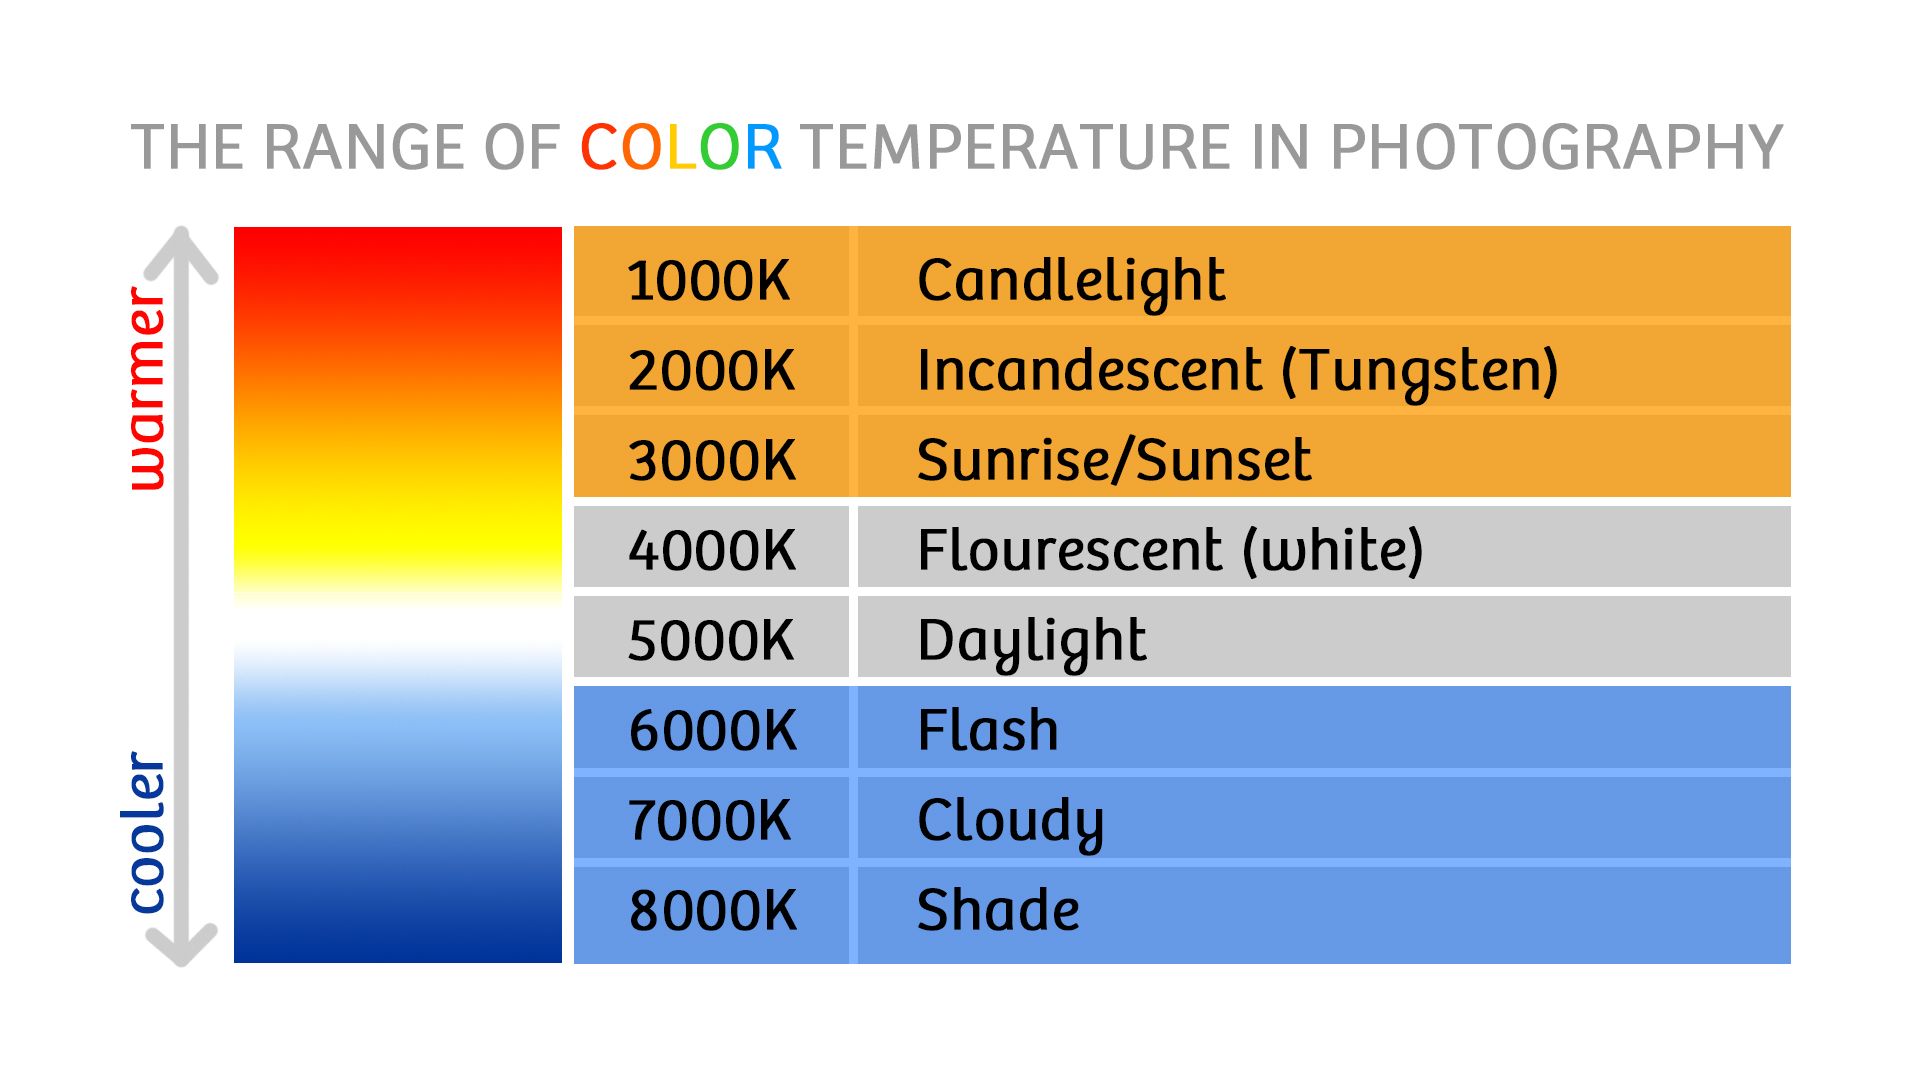 The Range of Color Temperature in Photography